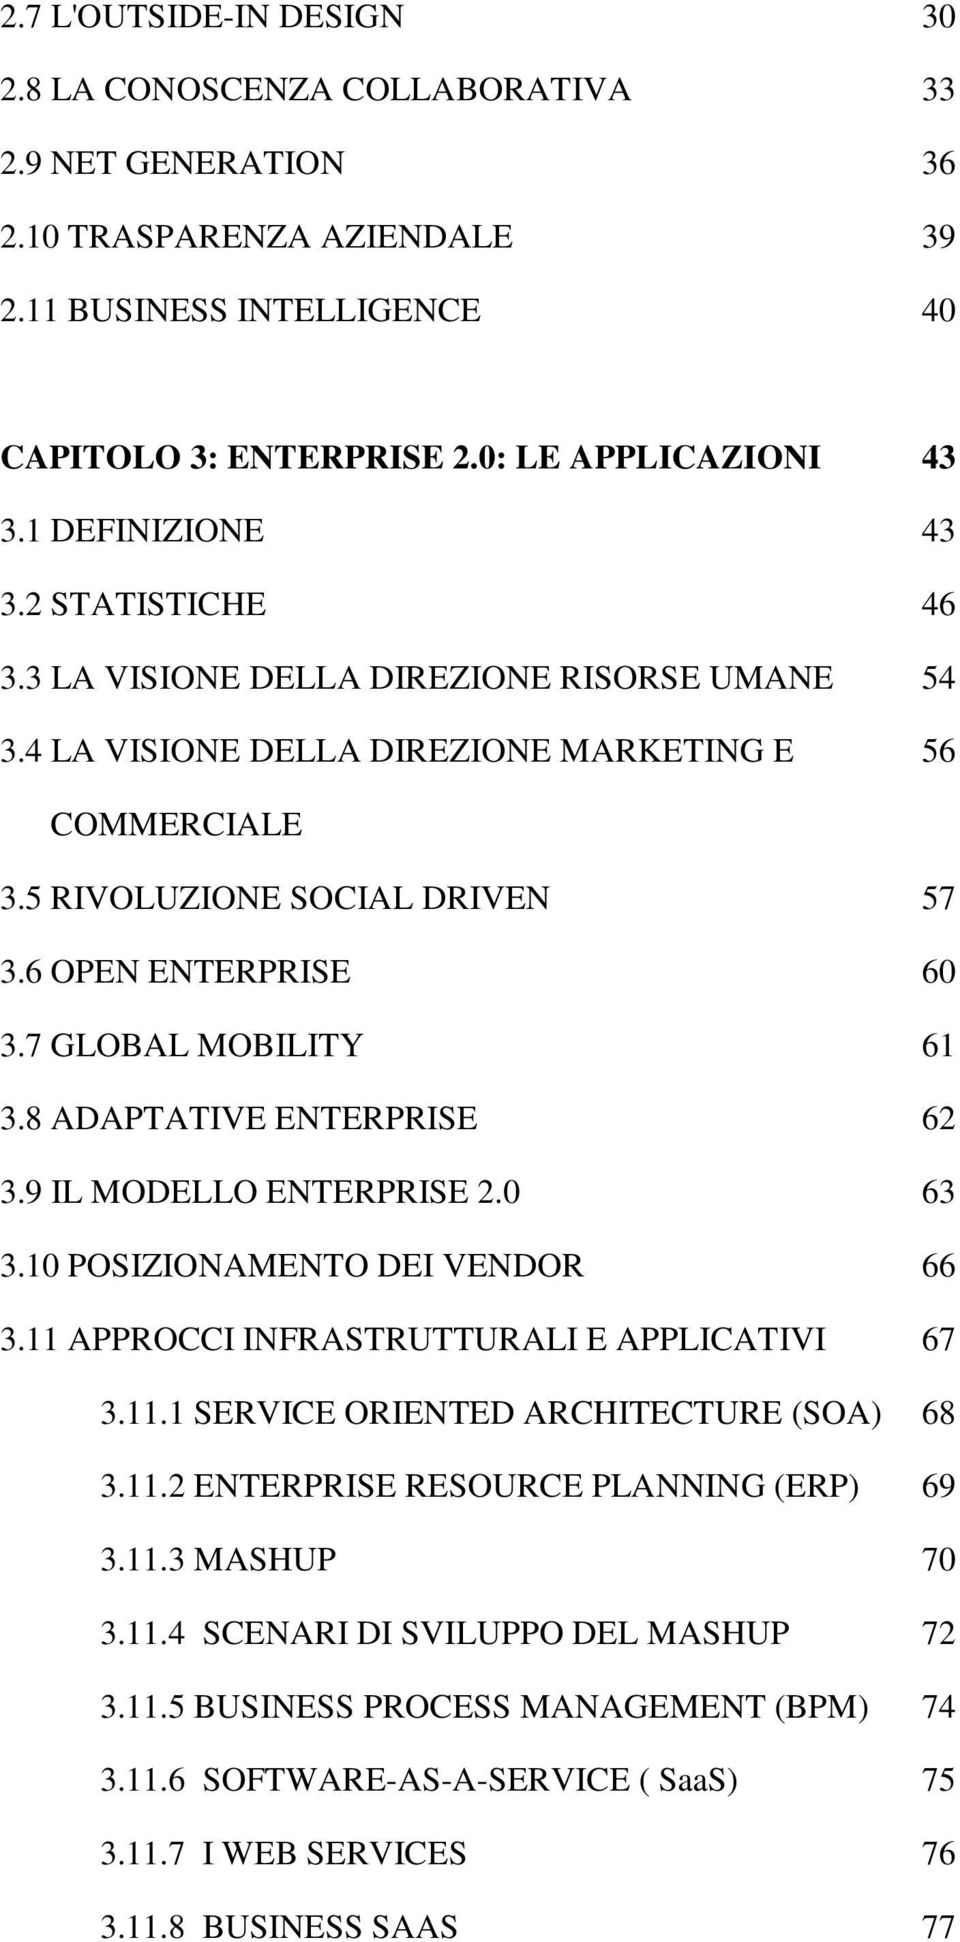 7 GLOBAL MOBILITY 61 3.8 ADAPTATIVE ENTERPRISE 62 3.9 IL MODELLO ENTERPRISE 2.0 63 3.10 POSIZIONAMENTO DEI VENDOR 66 3.11 APPROCCI INFRASTRUTTURALI E APPLICATIVI 67 3.11.1 SERVICE ORIENTED ARCHITECTURE (SOA) 68 3.